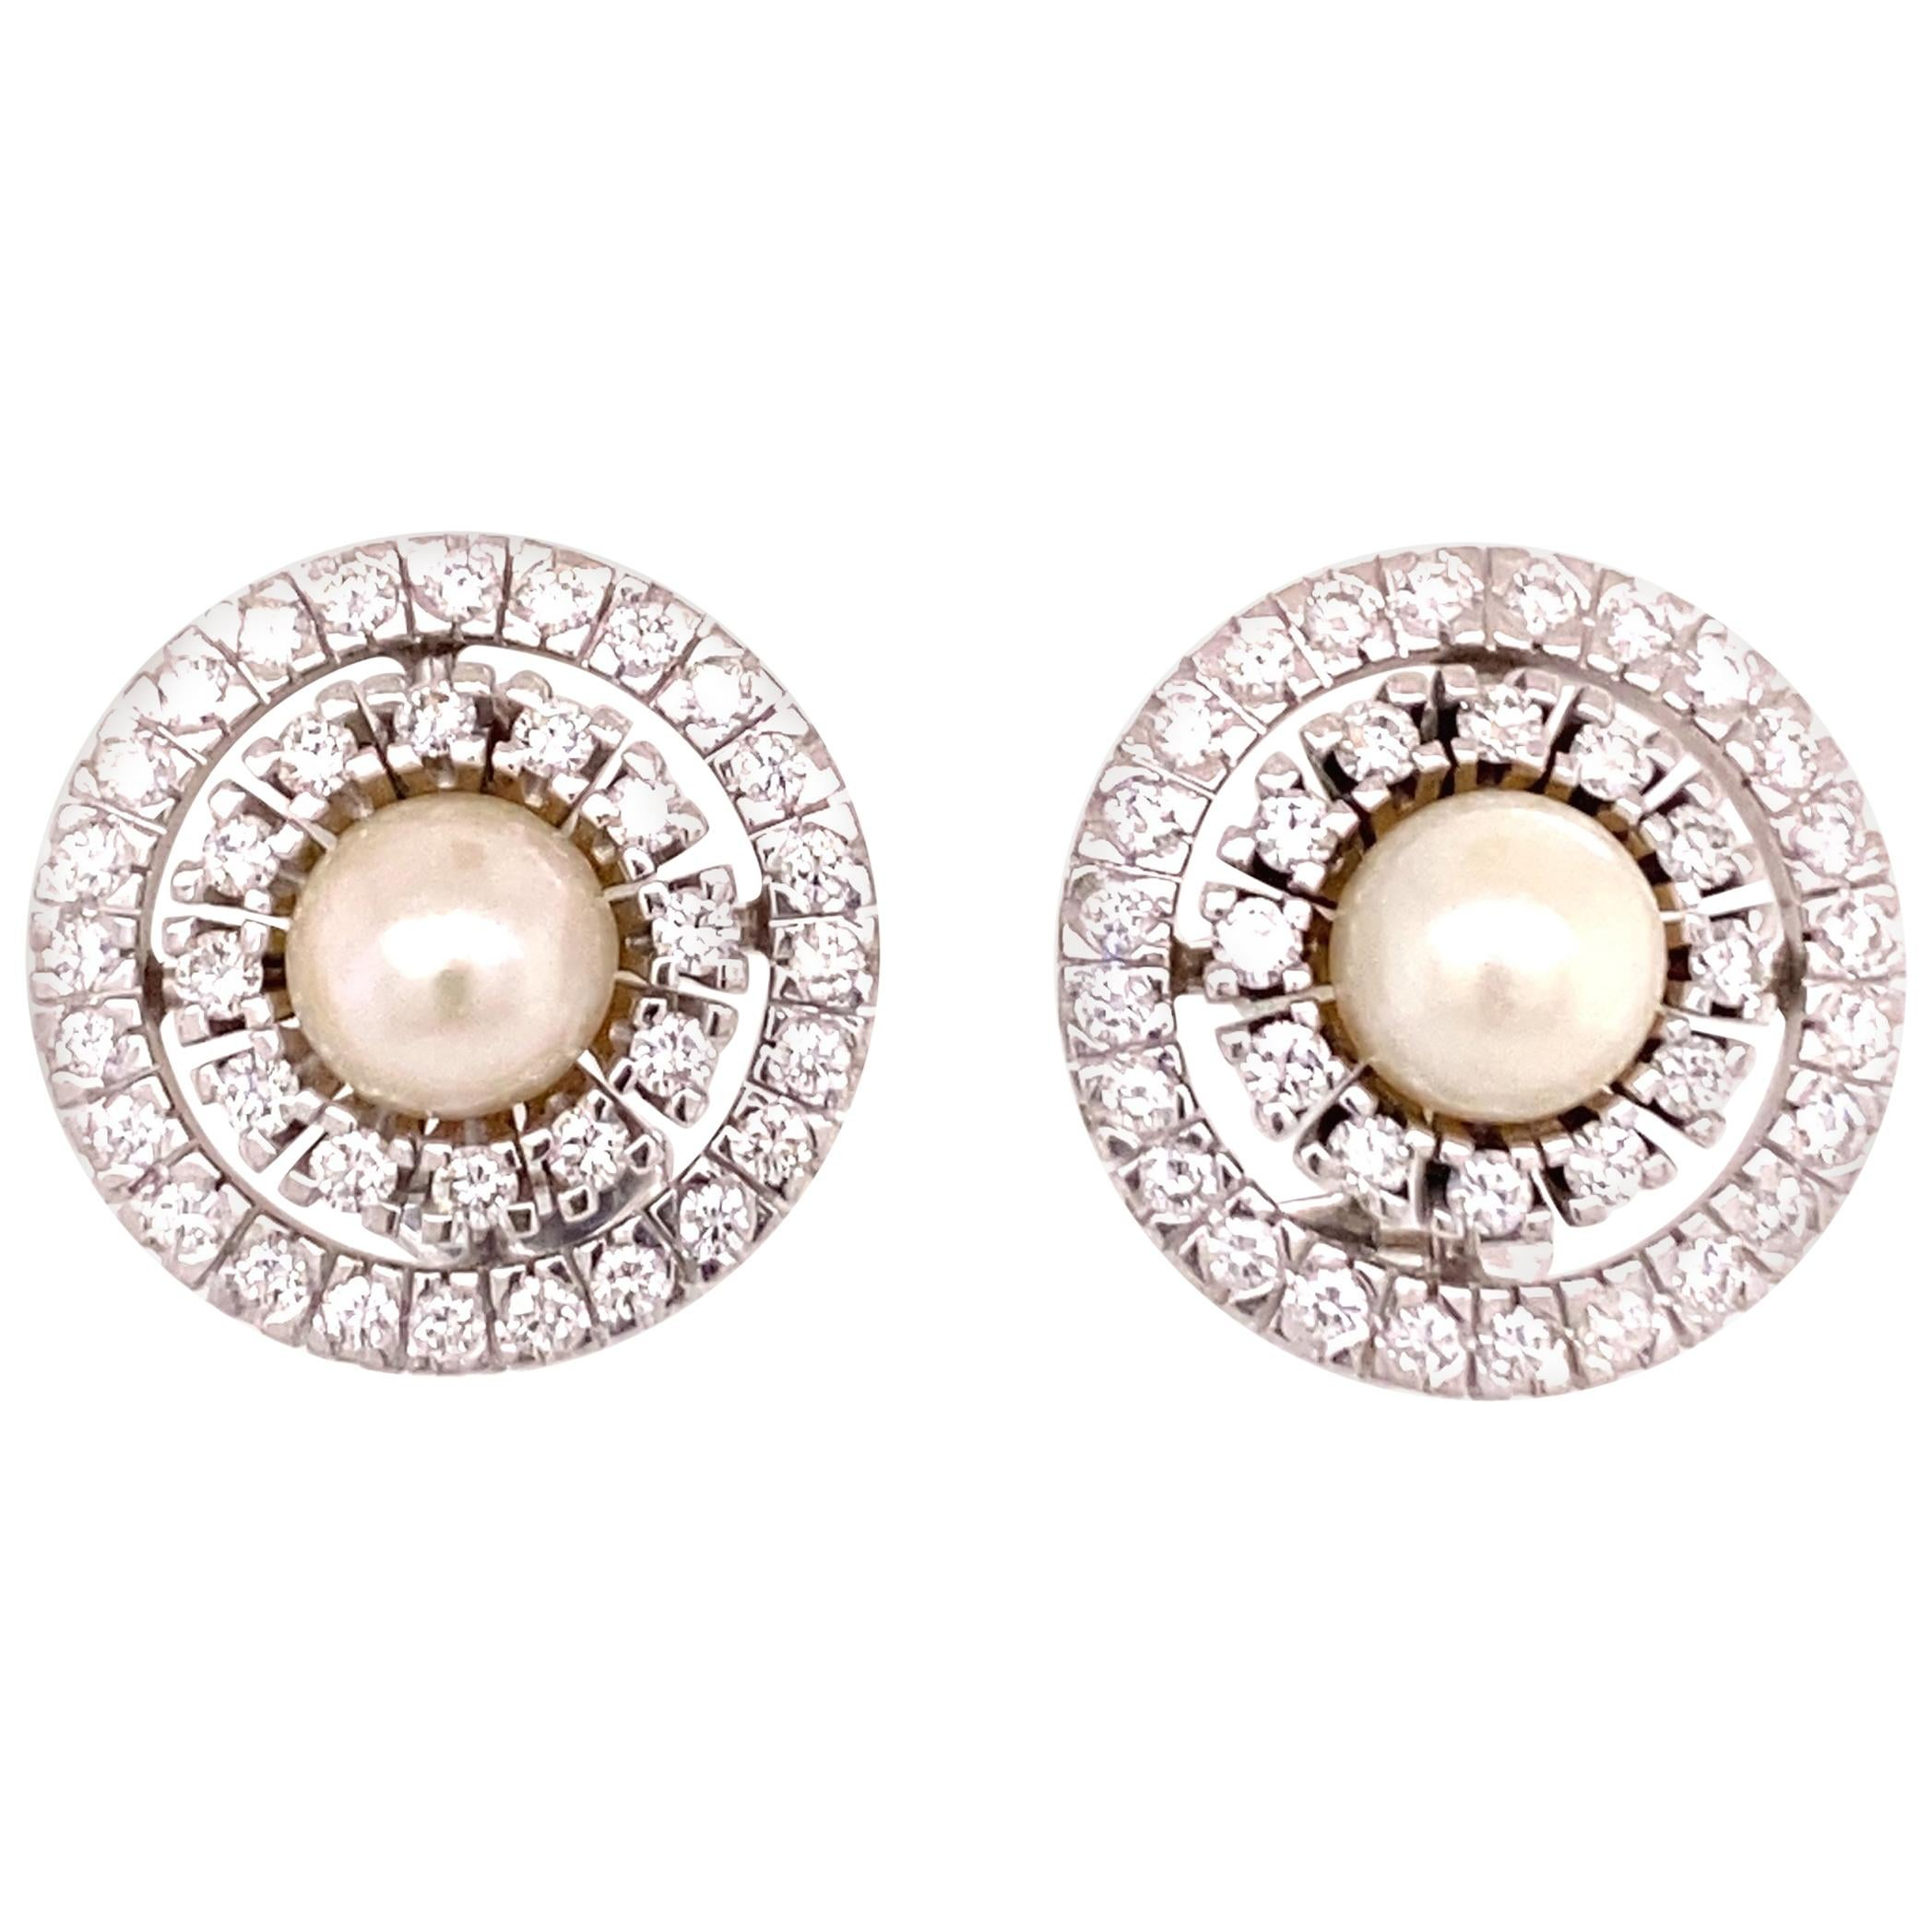 Akoya Cultured Pearl and Diamond Earclips in 18 Karat White Gold